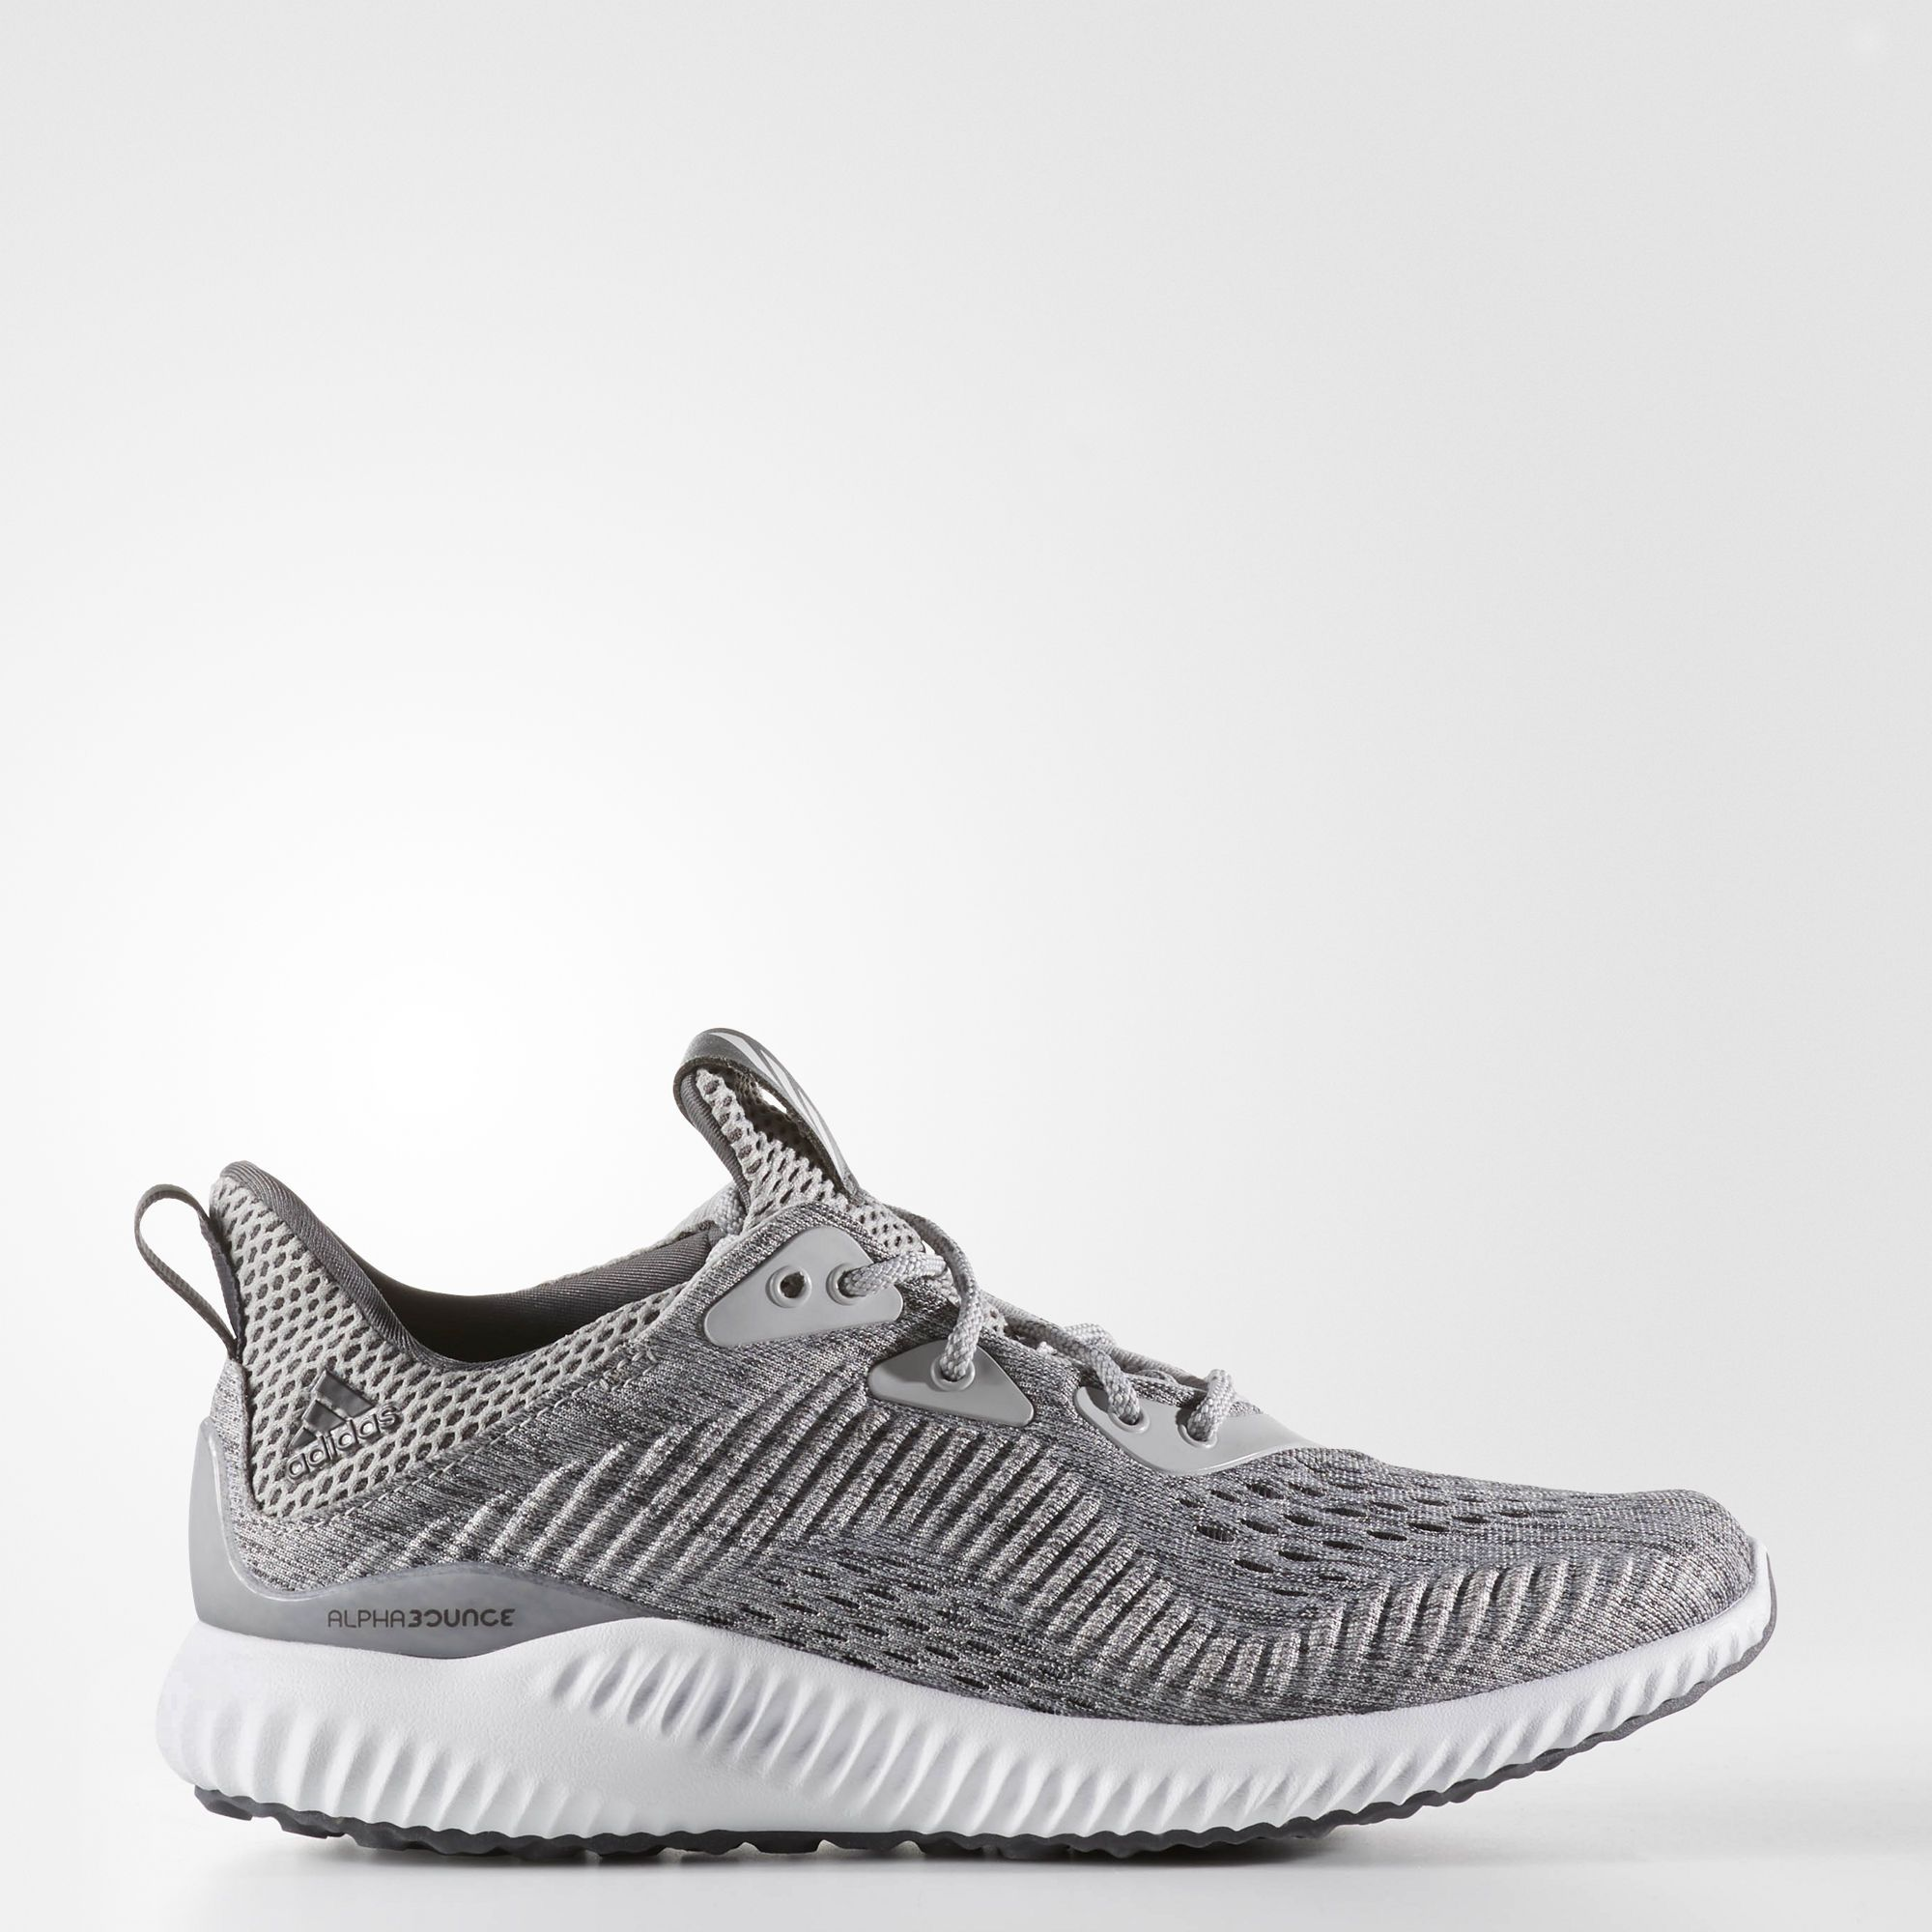 newest f8266 4000a Adidas alphabounce Haptic Shoes (Midnight Grey   Running White Ftw   Core  Red)   Adidas alphabounce Shoes   Adidas, Sneakers, Things that bounce